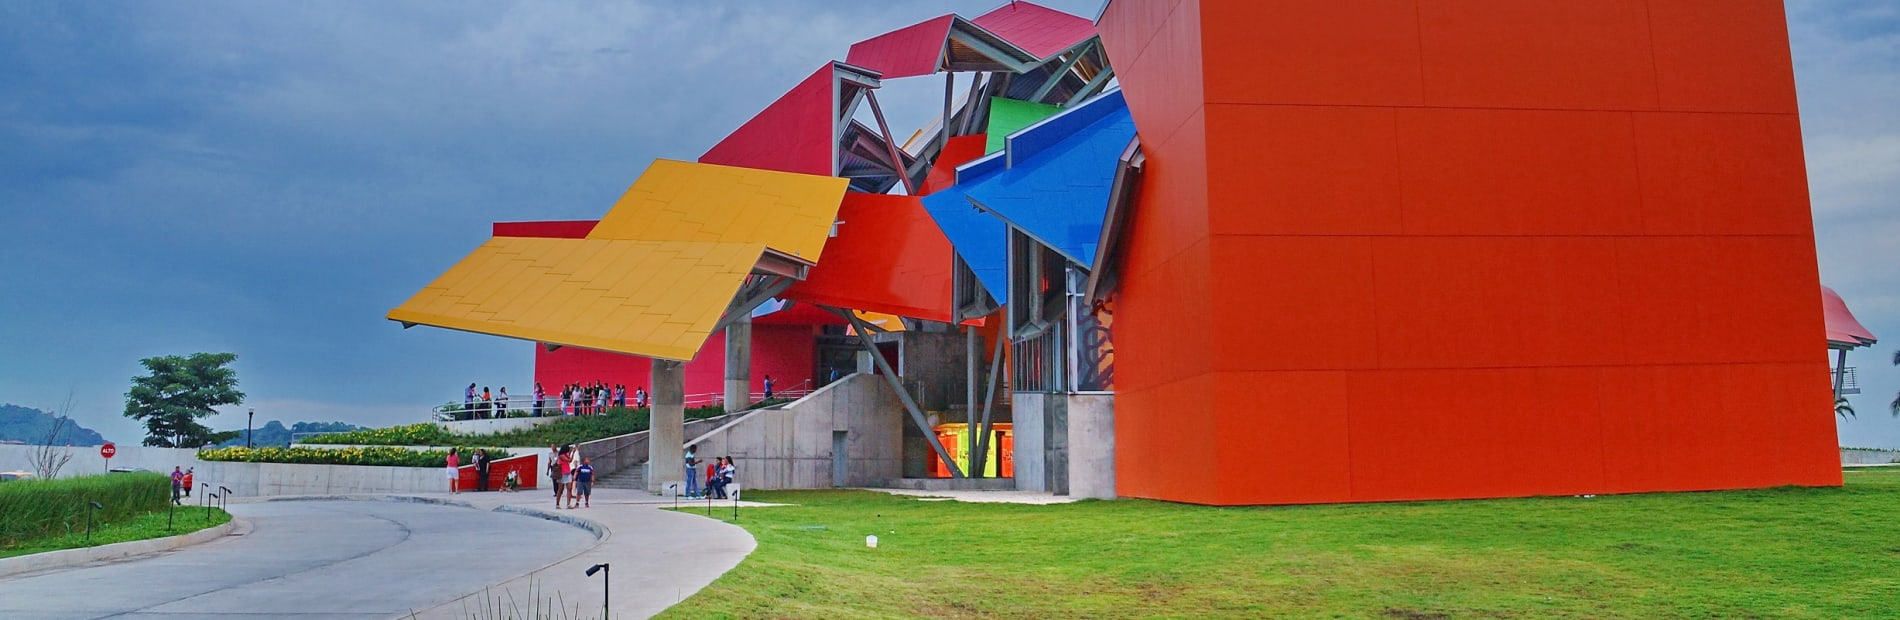 A multi-coloured building designed and built in an abstract origami shape